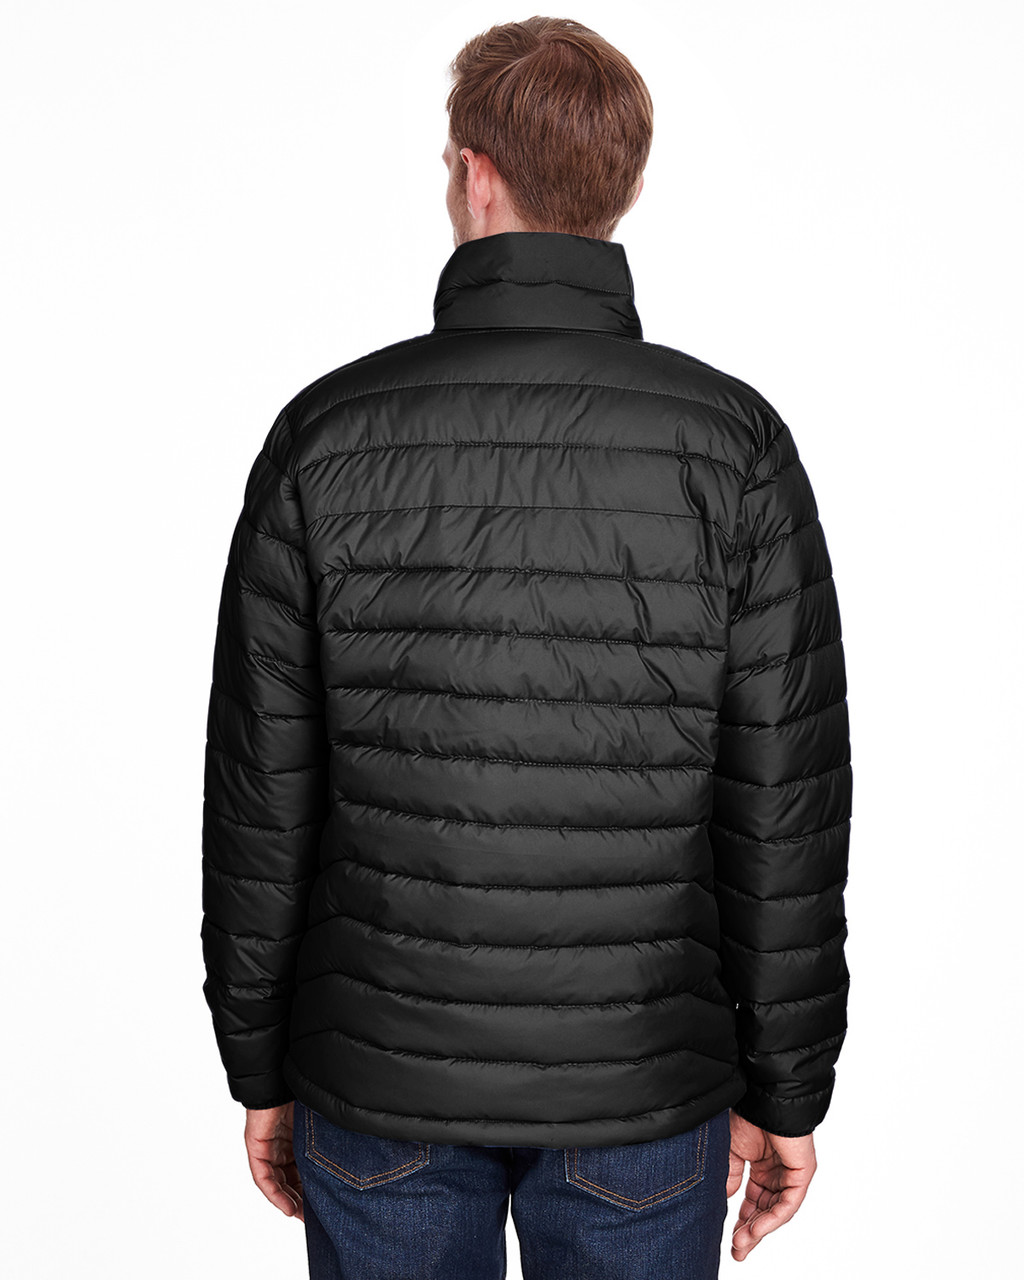 Black - Back, 1698001 Columbia Men's Powder Lite™ Jacket | Blankclothing.ca